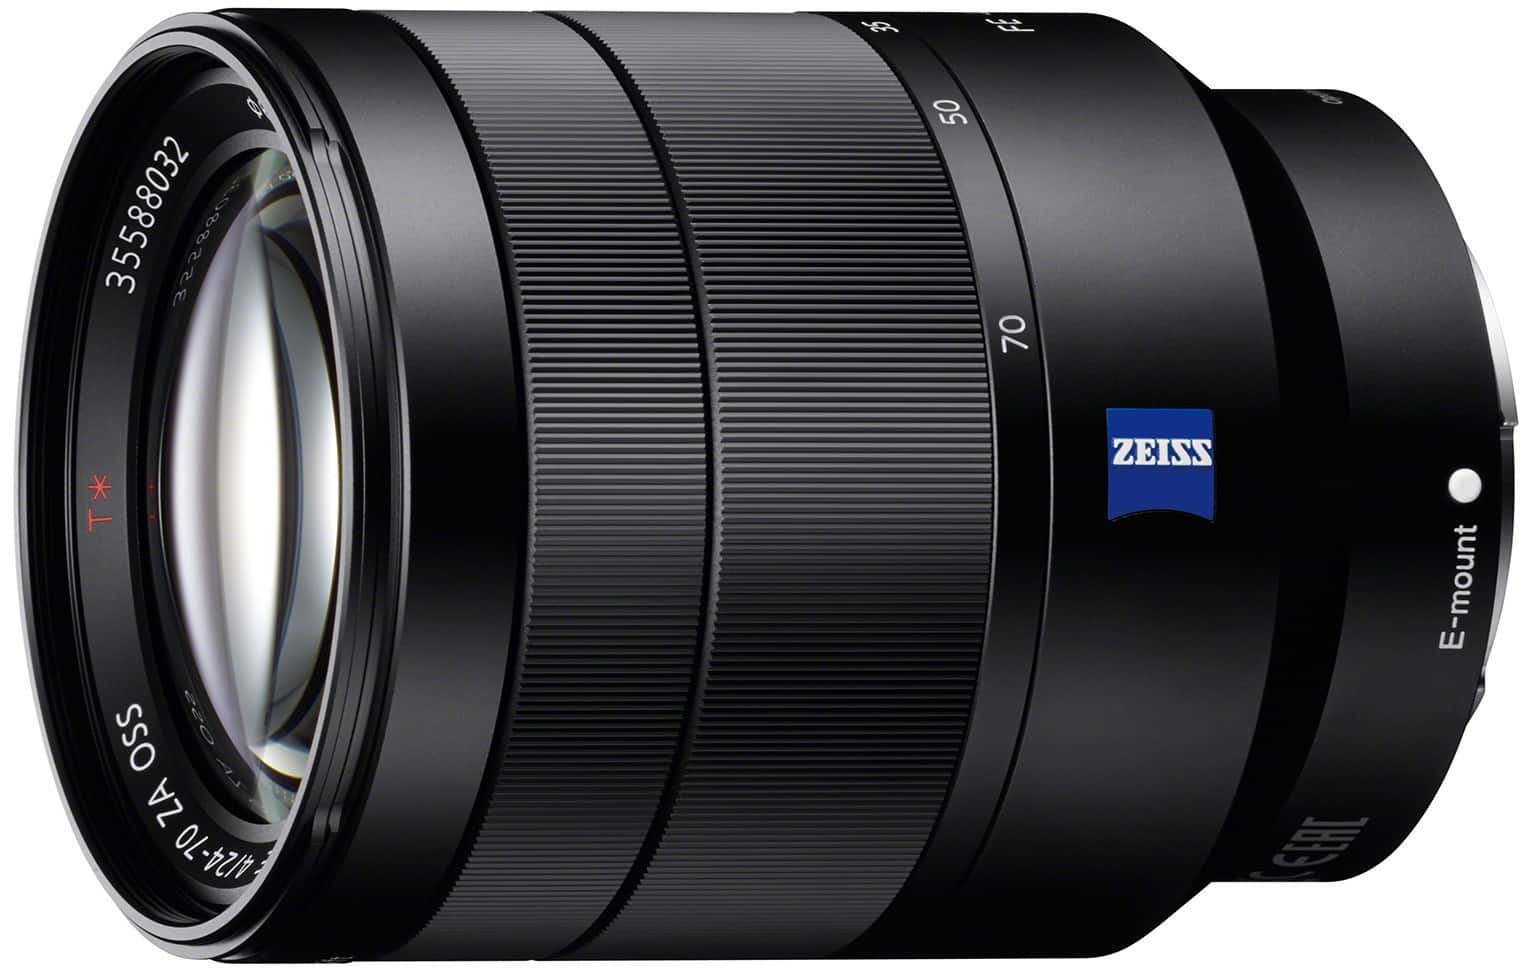 Sony Vario-Tessar T* FE 24-70mm F4 ZA OSS Camera Lens - NEW + Free Shipping $598